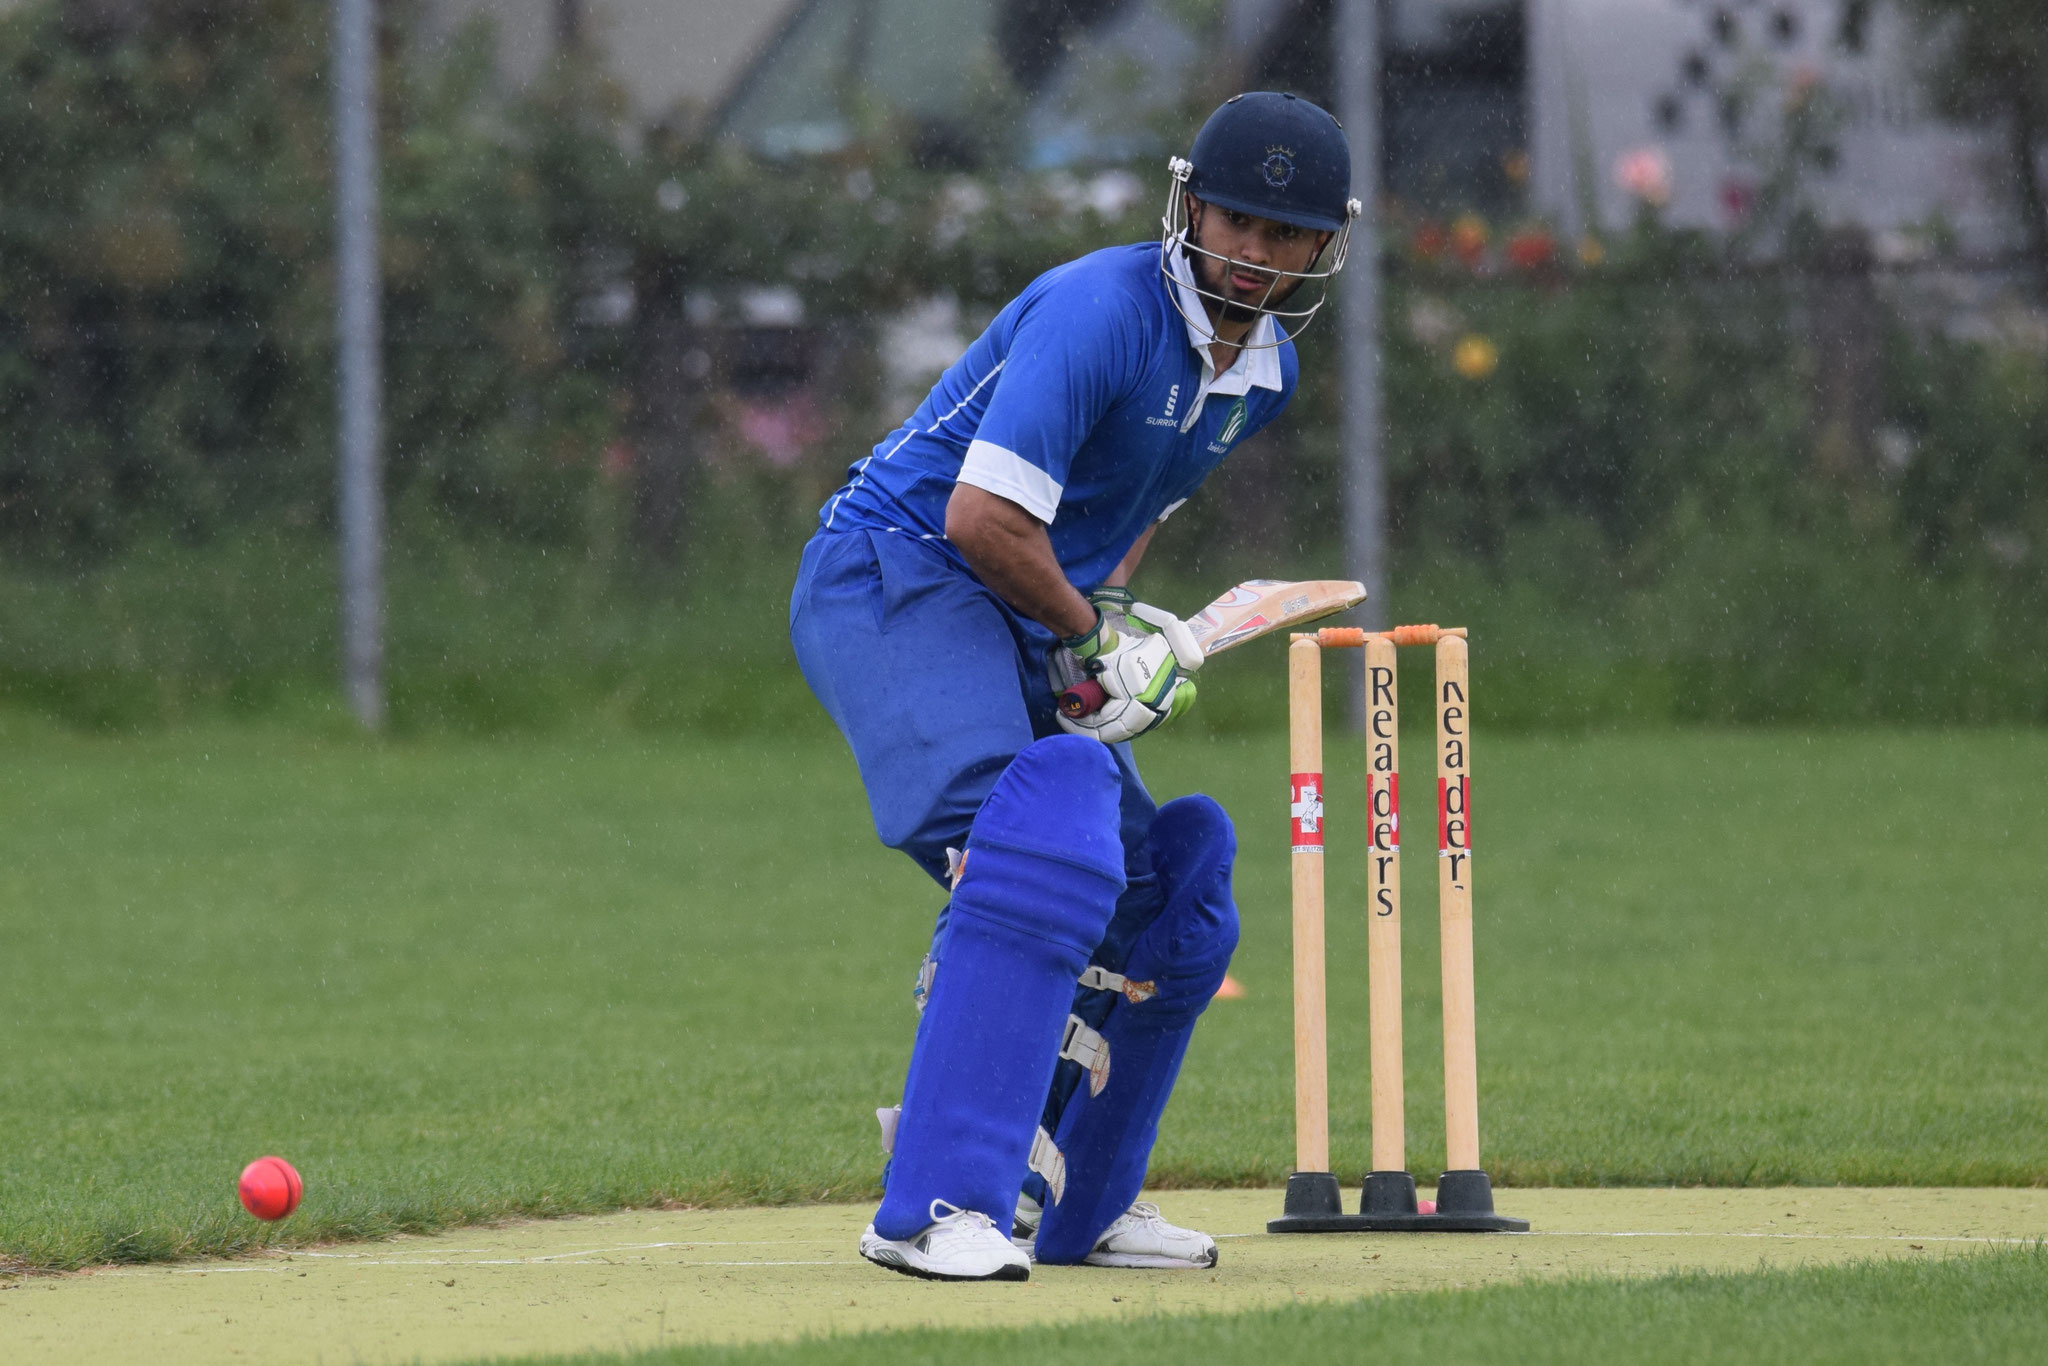 Khawar opened the batting for the 2nd XI.